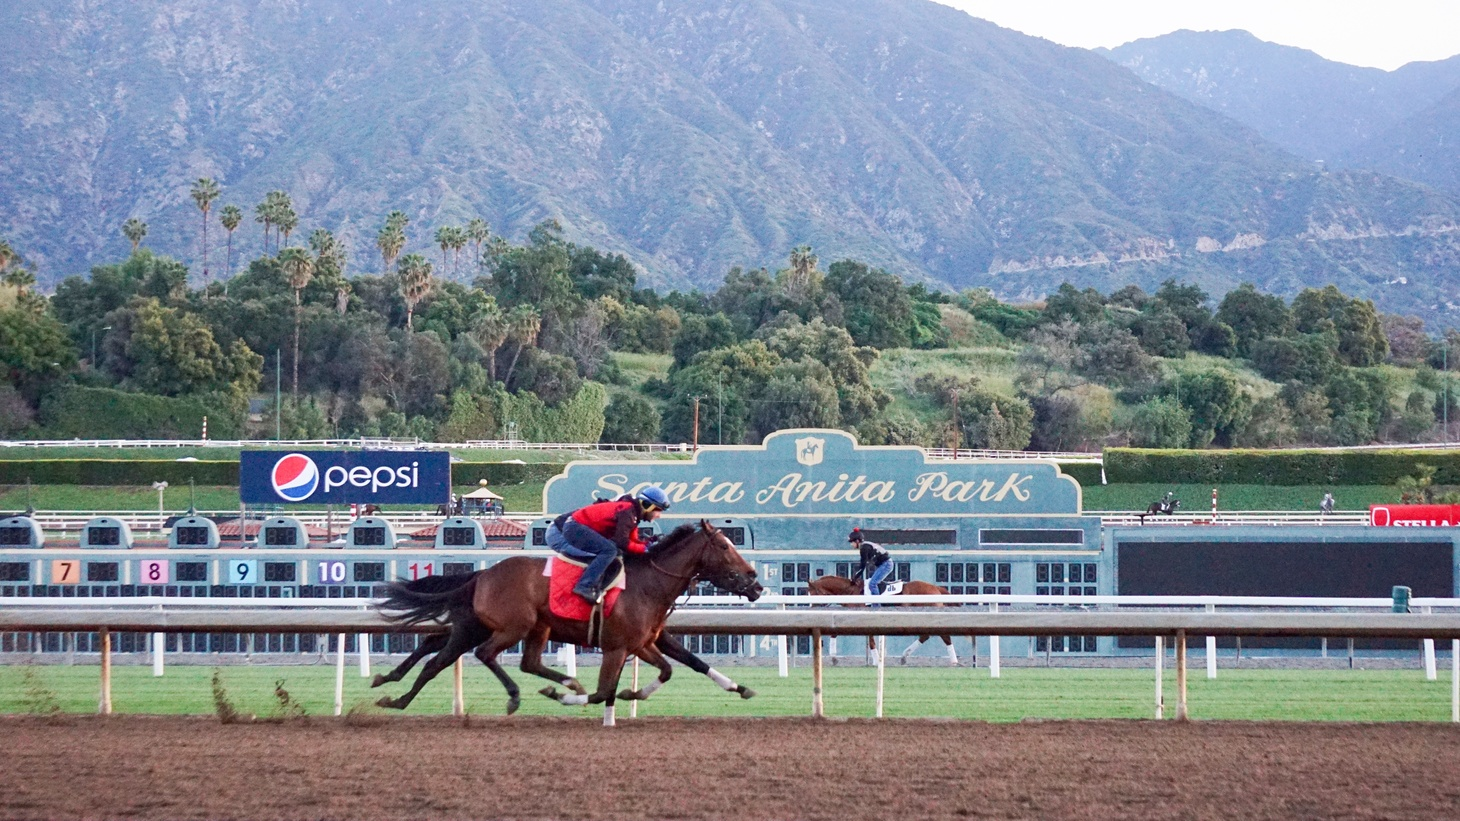 The Santa Anita race track on an early morning in May.